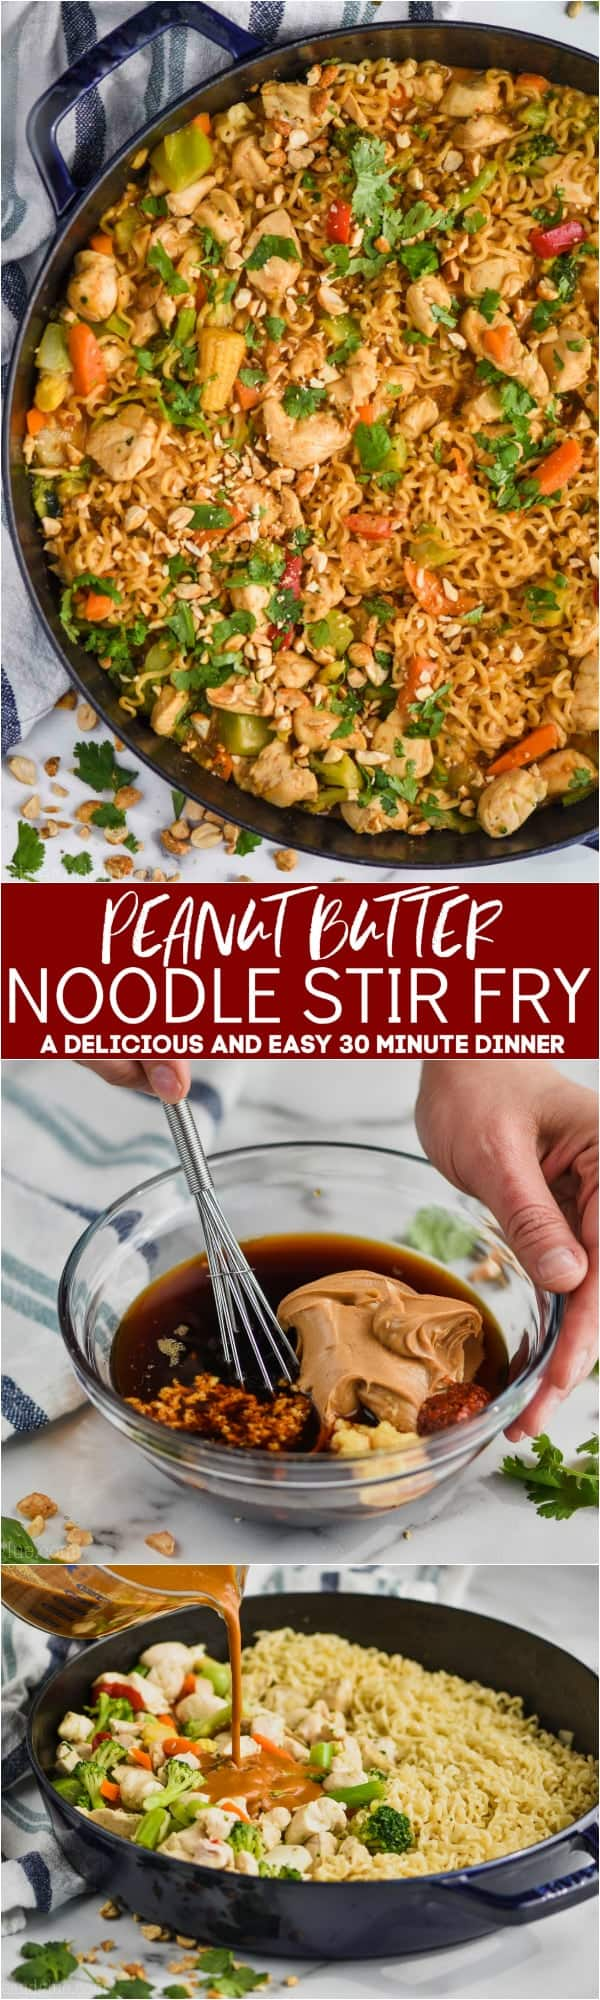 collage of peanut butter stir fry noodles photos